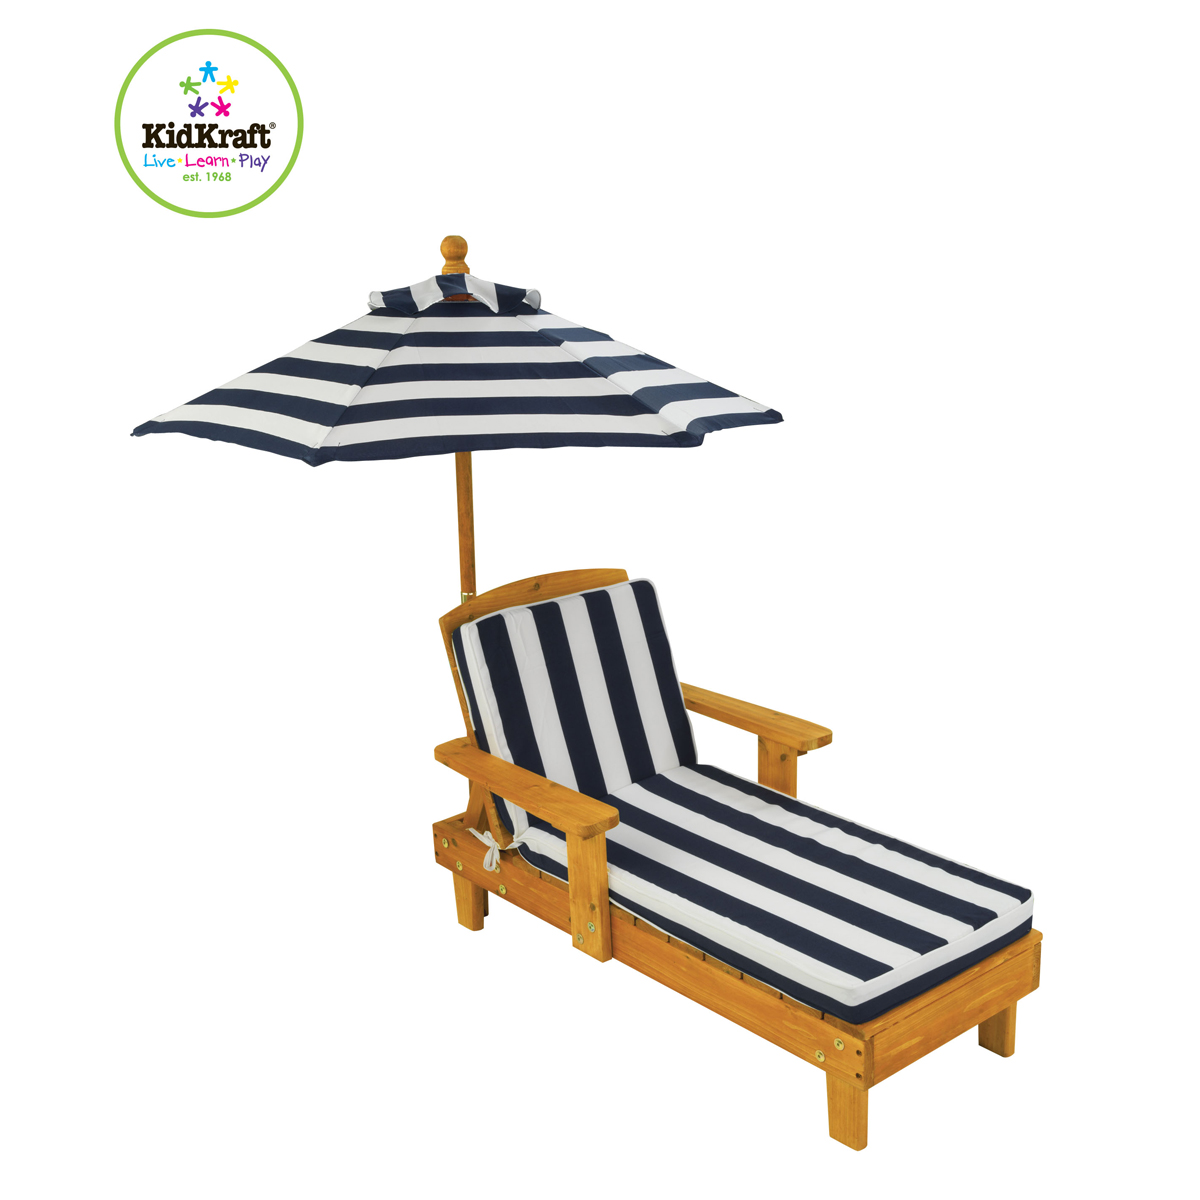 Kidkraft Outdoor Chaise With Umbrella 00105 Pirum